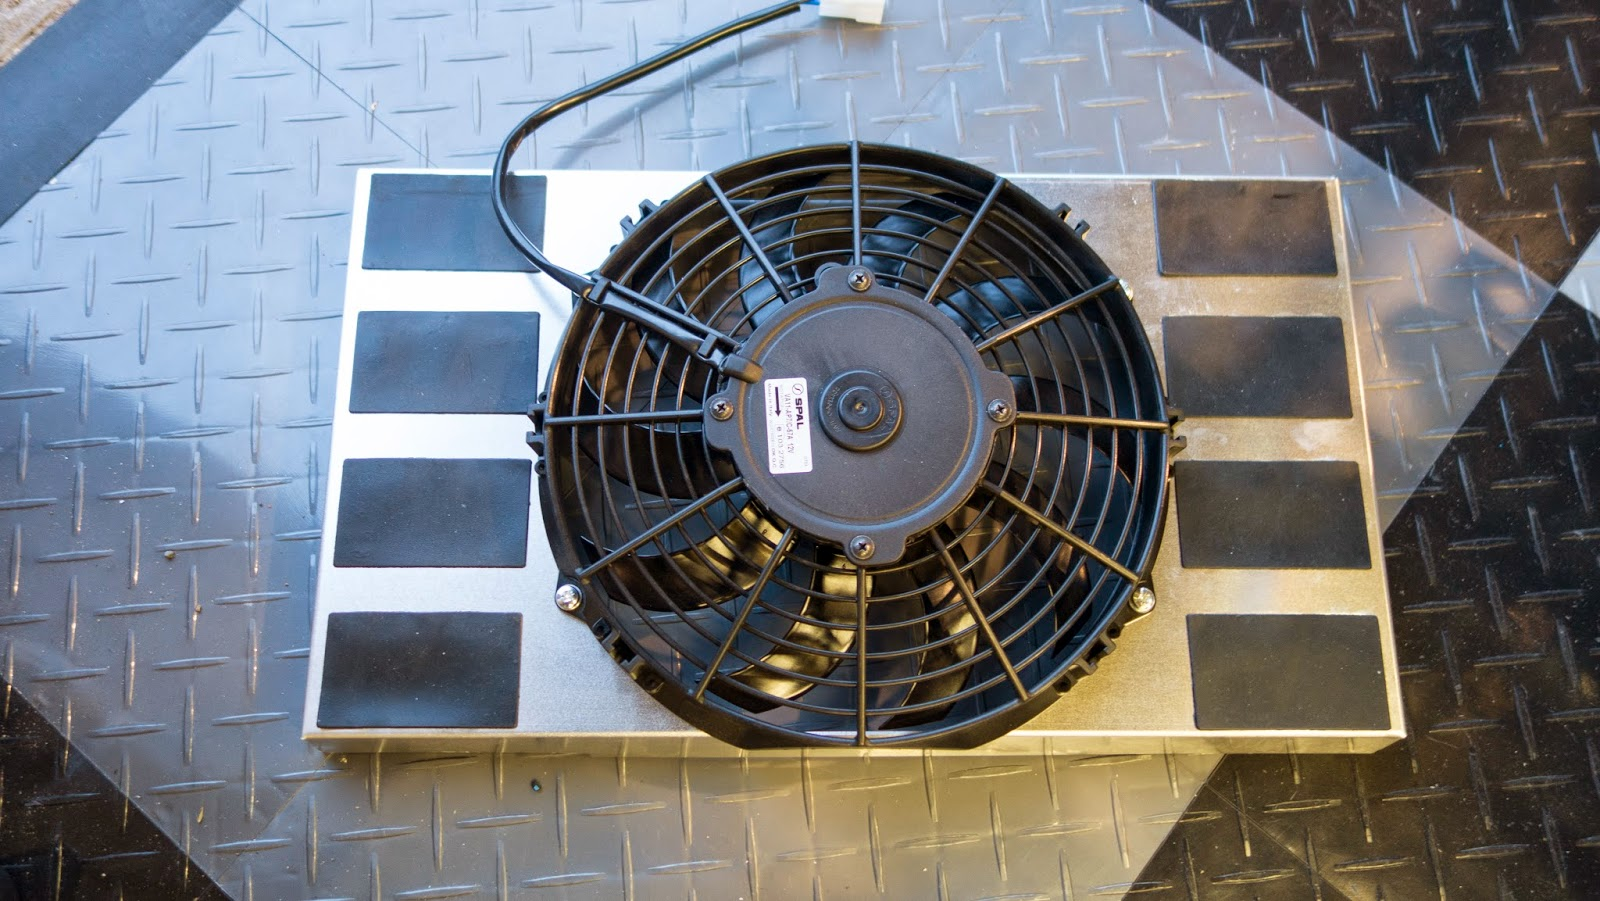 R500 radiator cowl fitted with fan.